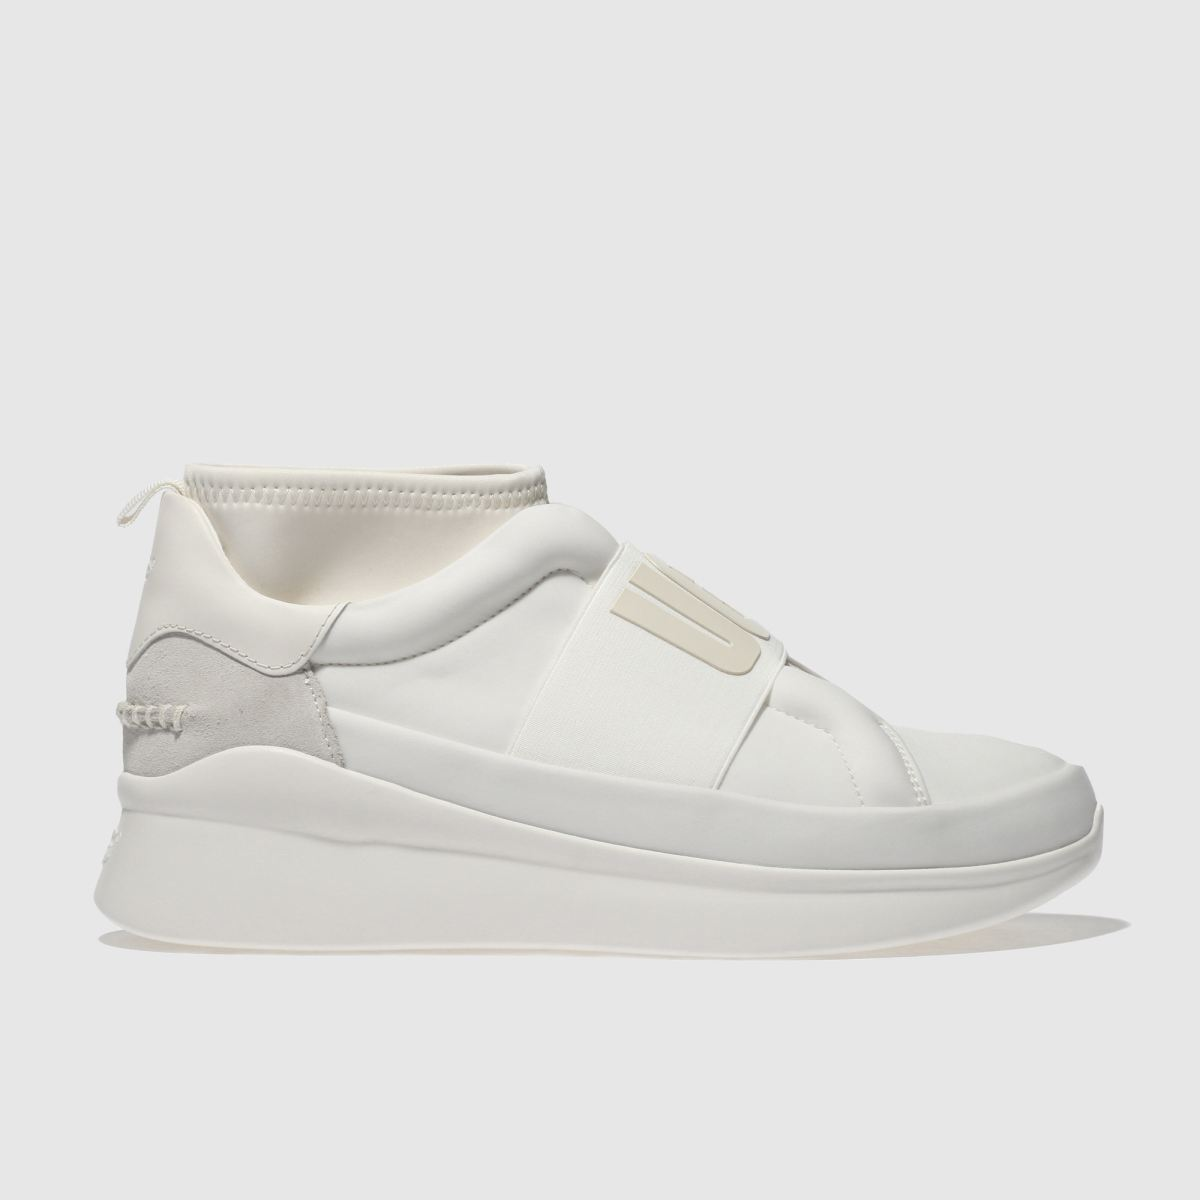 Ugg White Neutra Sneaker Trainers